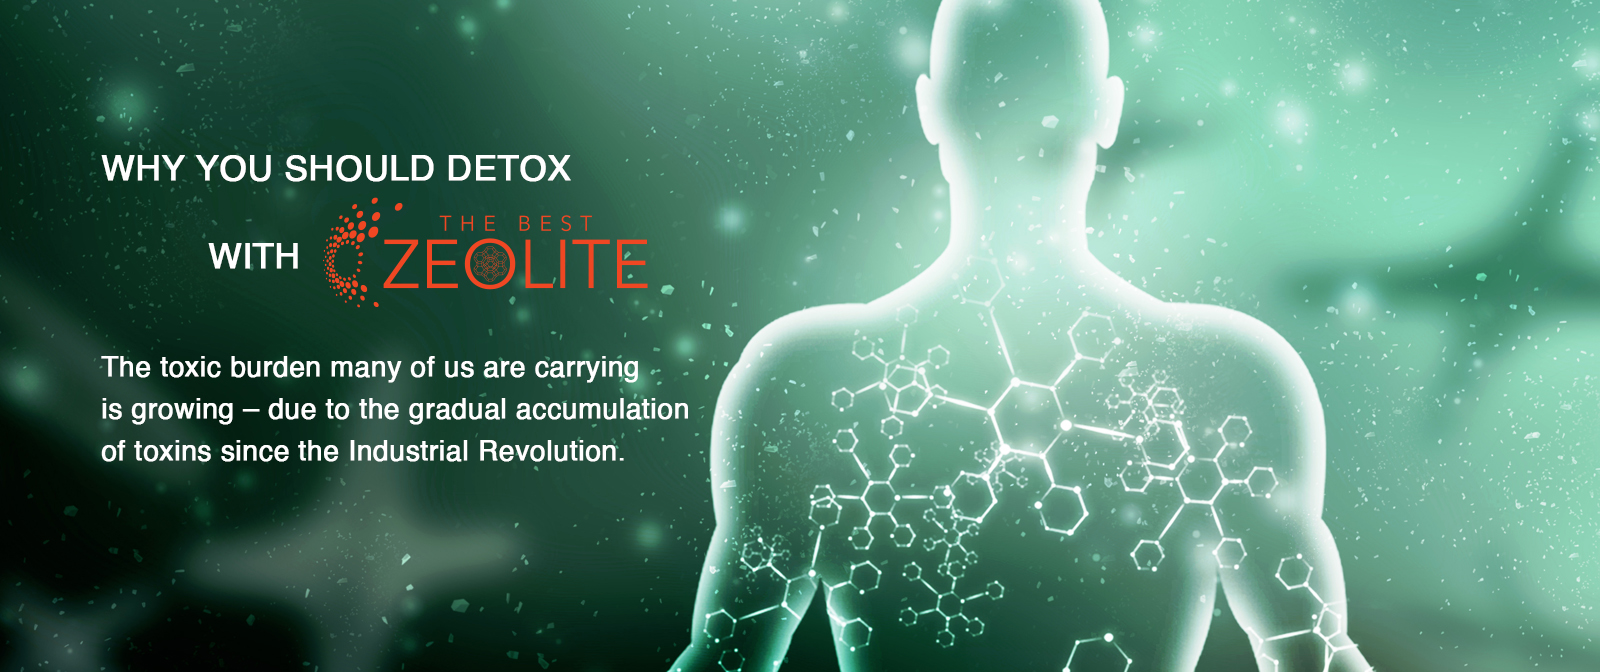 Why You Should Detox With Zeolite